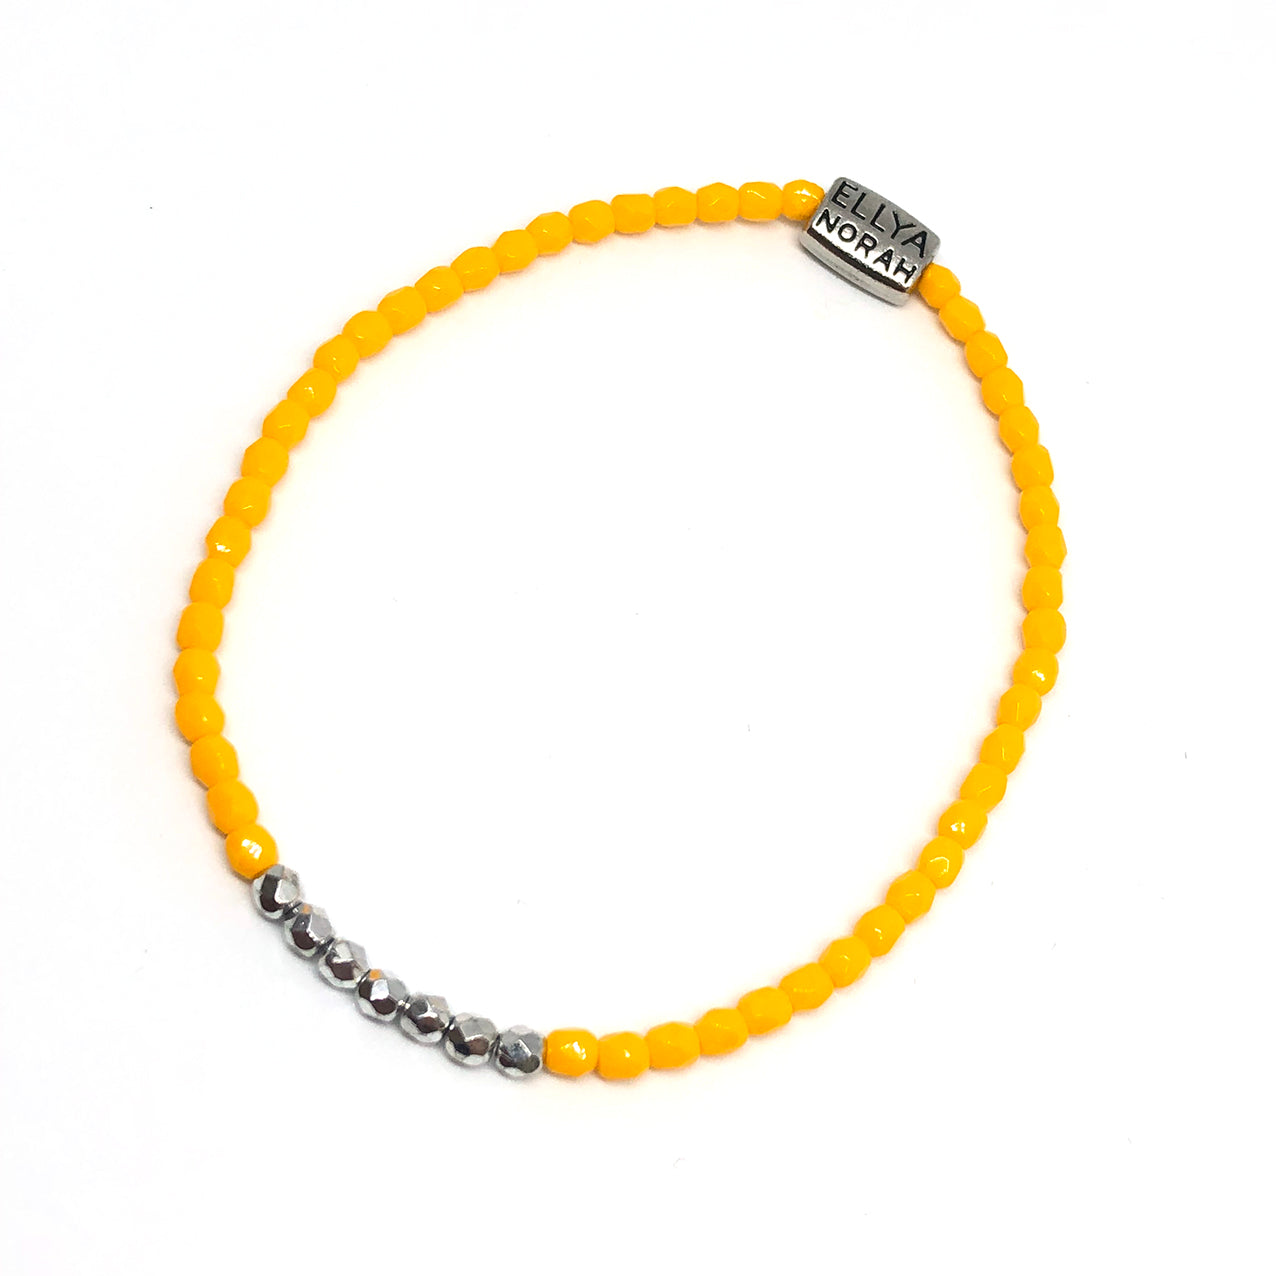 109 yellow silver